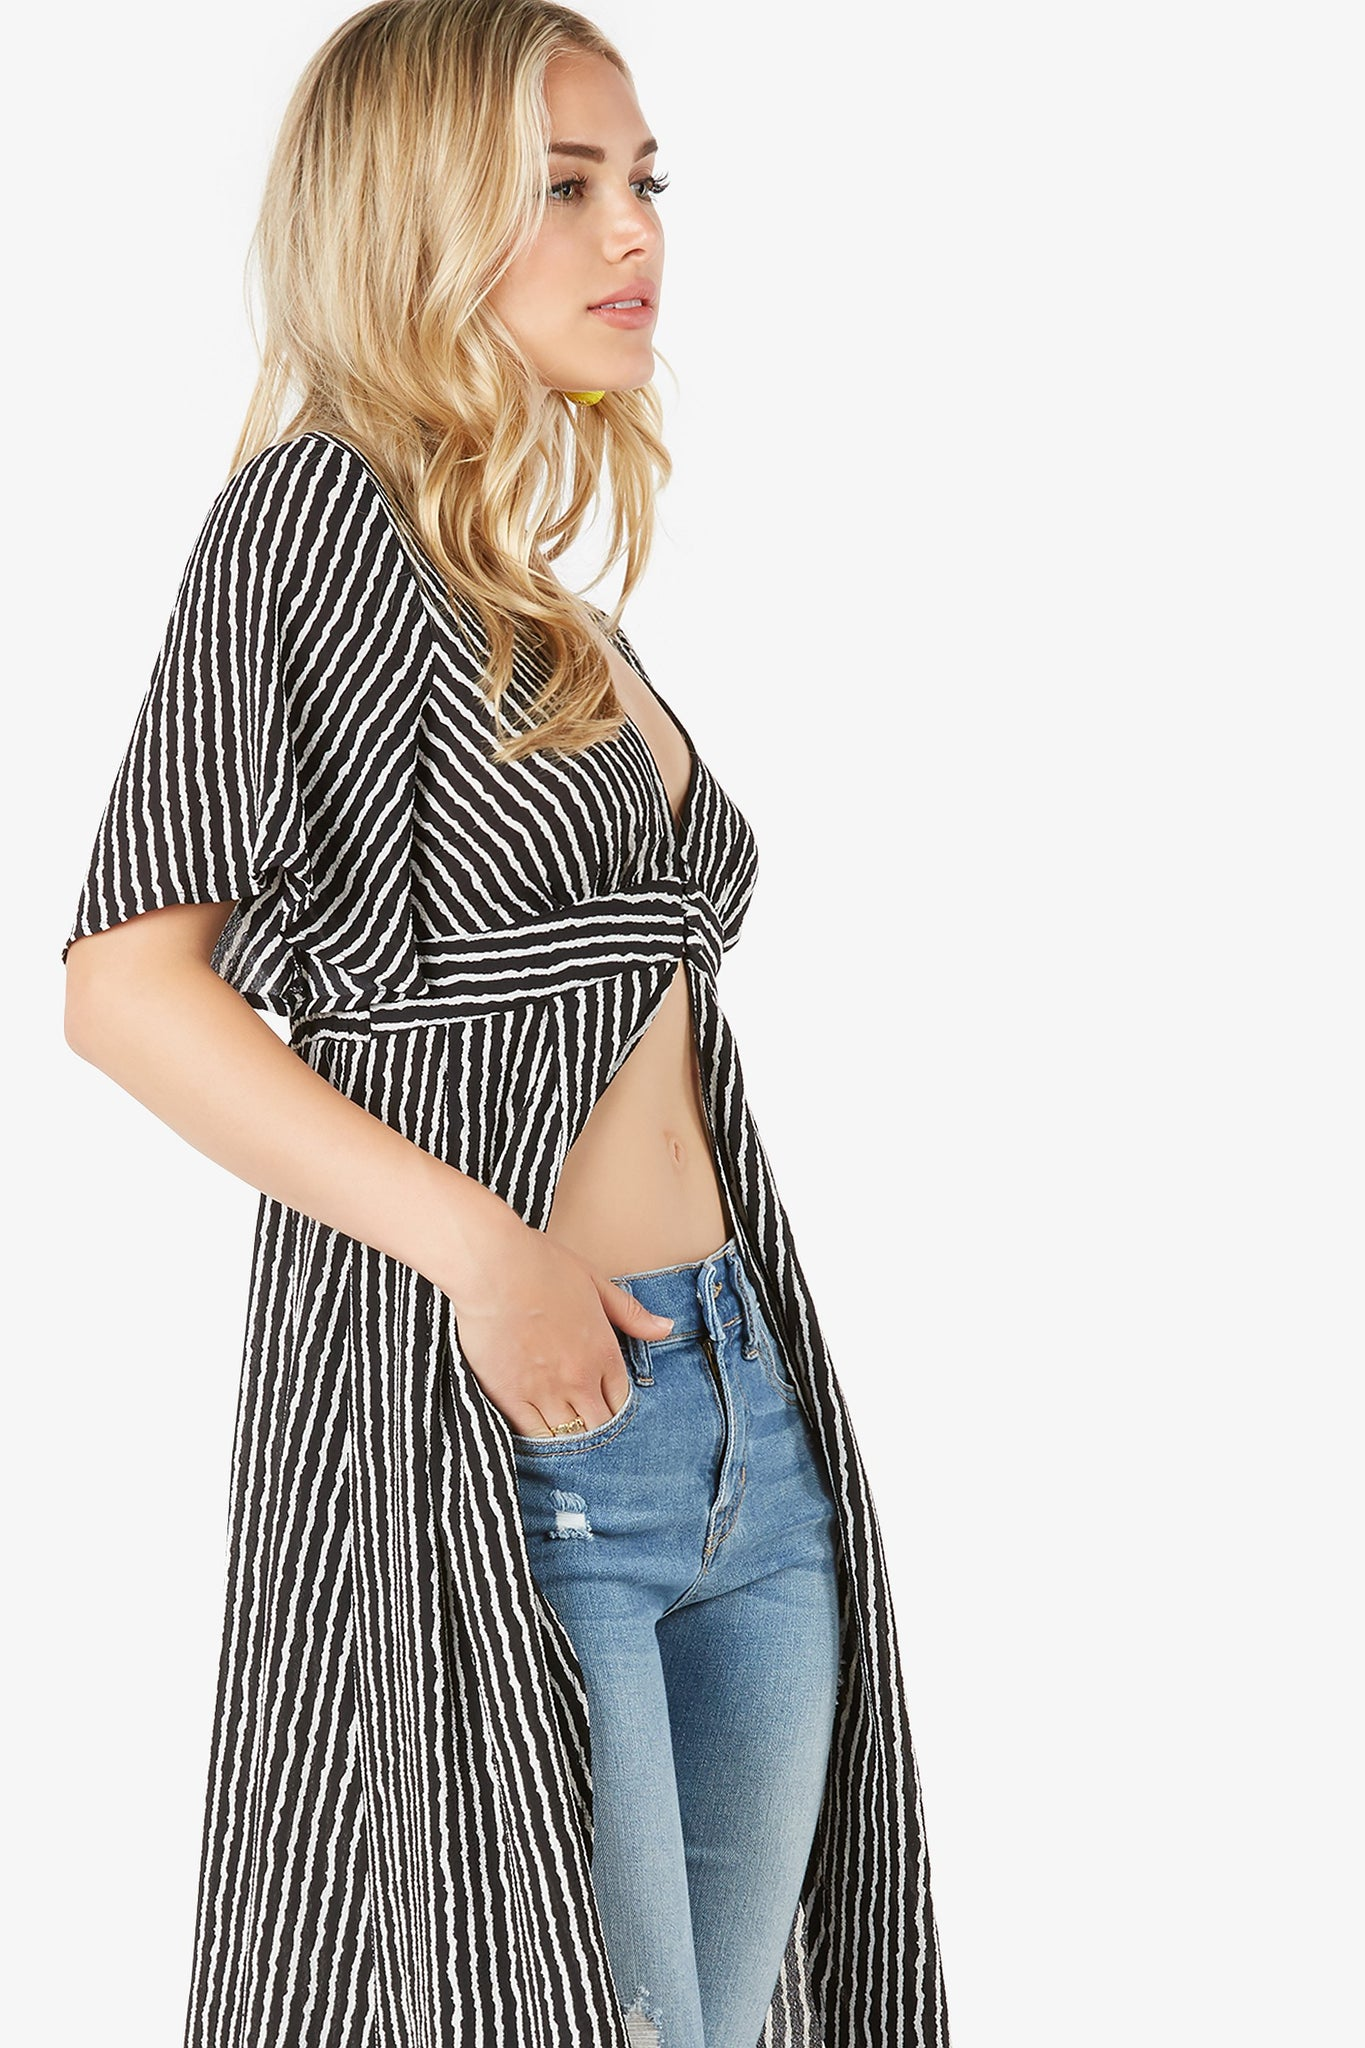 Chic short sleeve kimono top with V-neckline. Dainty button closure in front with flowy longline hem finish.